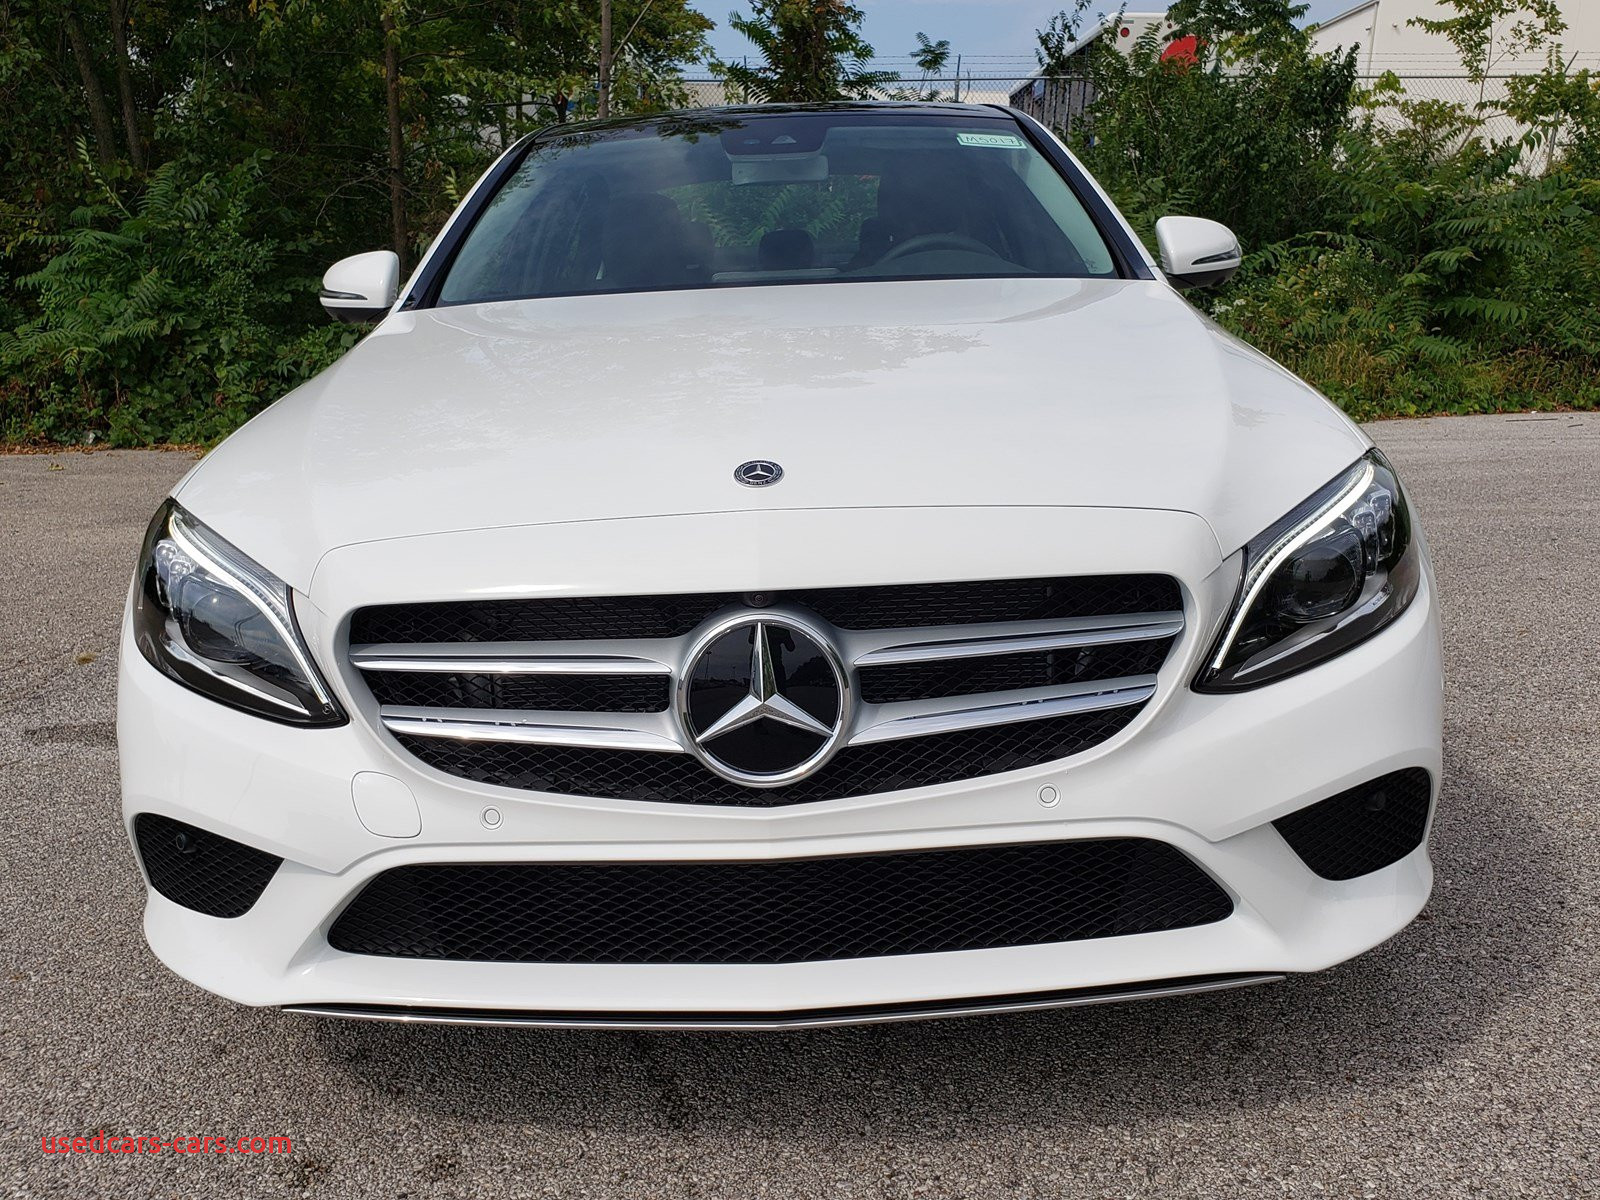 Benz C Class 2015 Reach 60 Miles Awesome New 2020 Mercedes Benz C 300 4matic